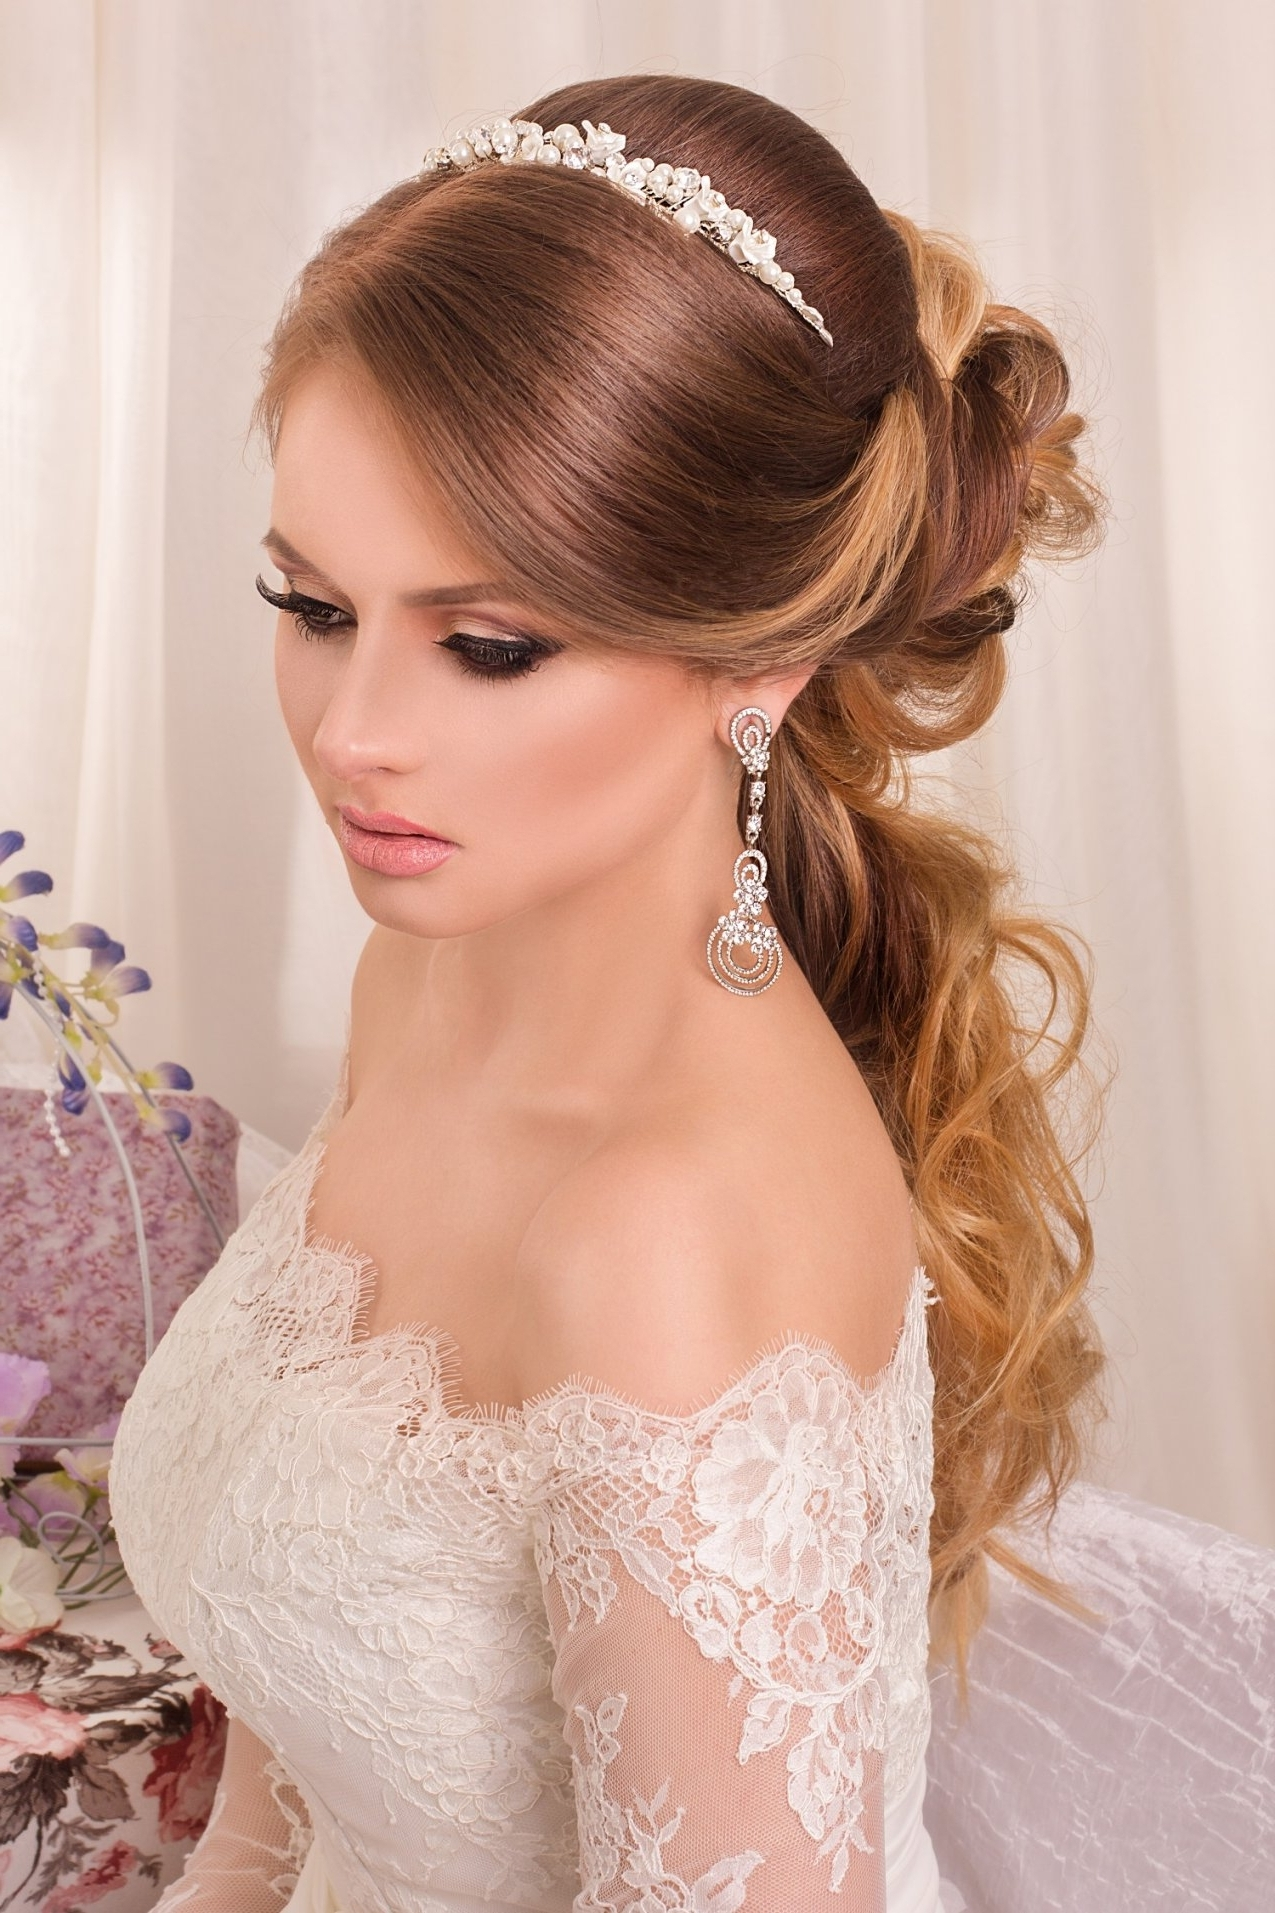 Most Popular Wedding Hairstyles To Match Your Dress With Choosing The Perfect Hairstyle To Match Your Wedding Dress – Al (View 10 of 15)